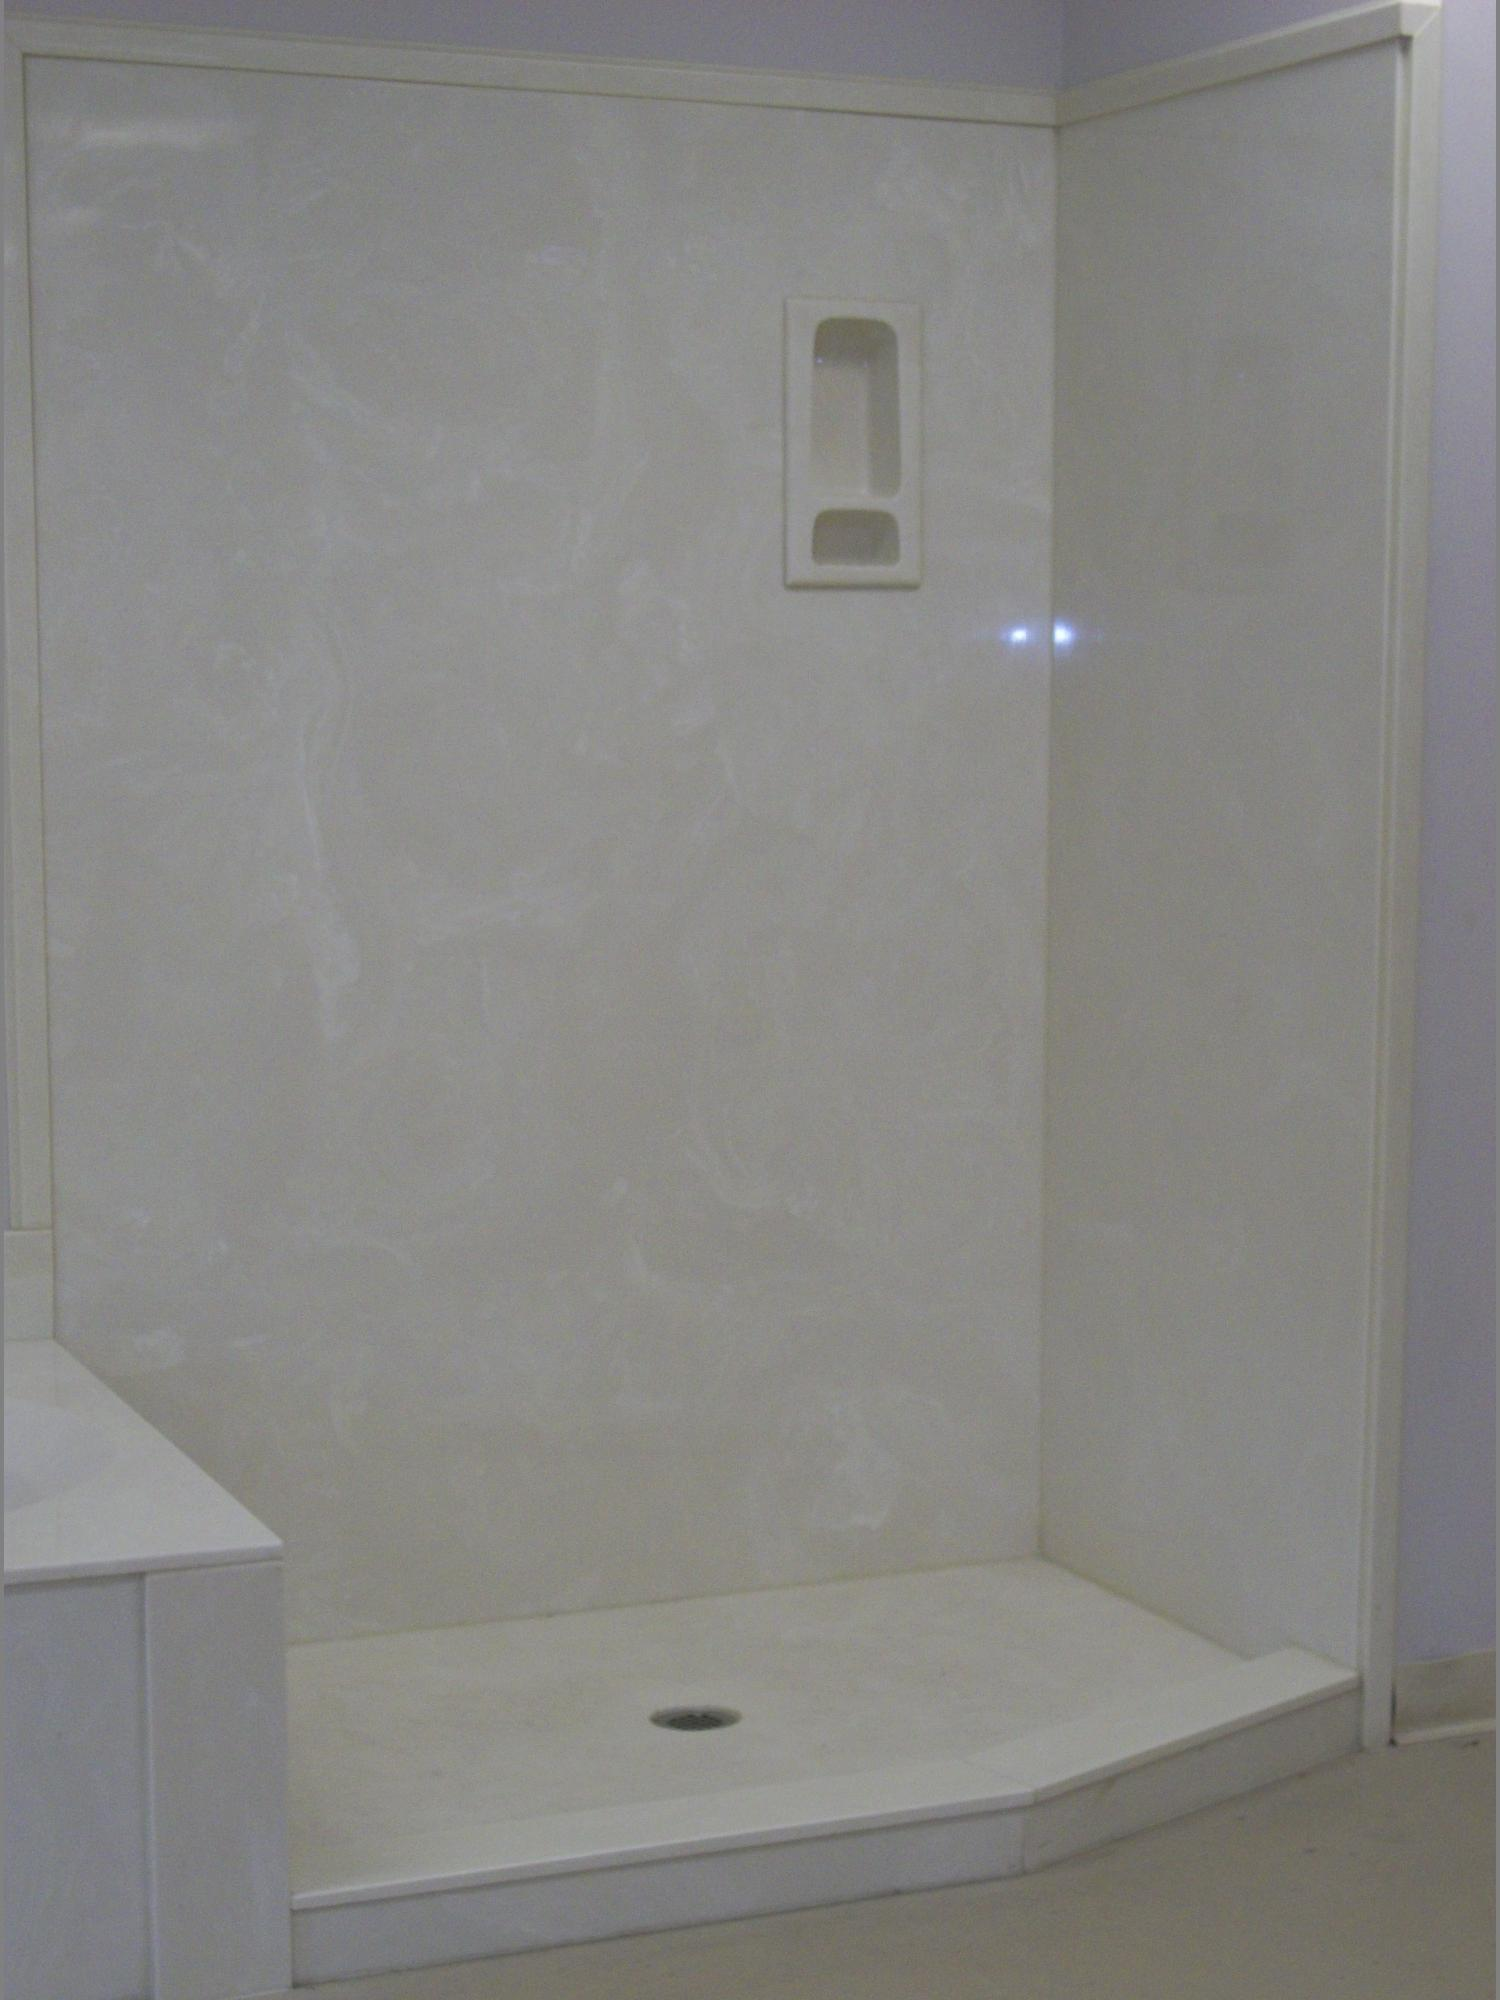 cultured marble bathroom sinks. cultured marble bathroom sinks